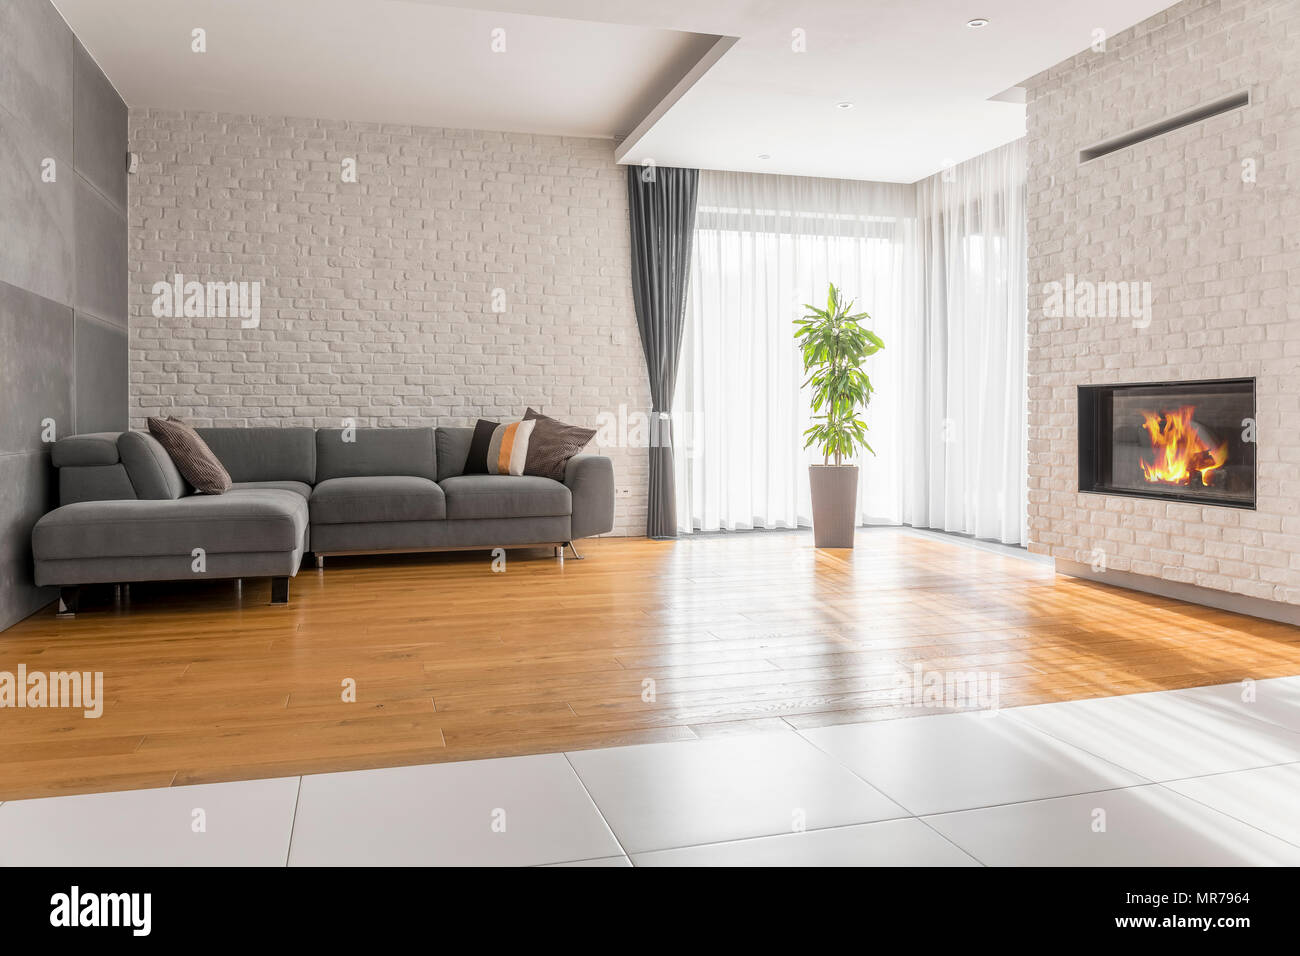 Fancy living room with sofa fireplace and plant